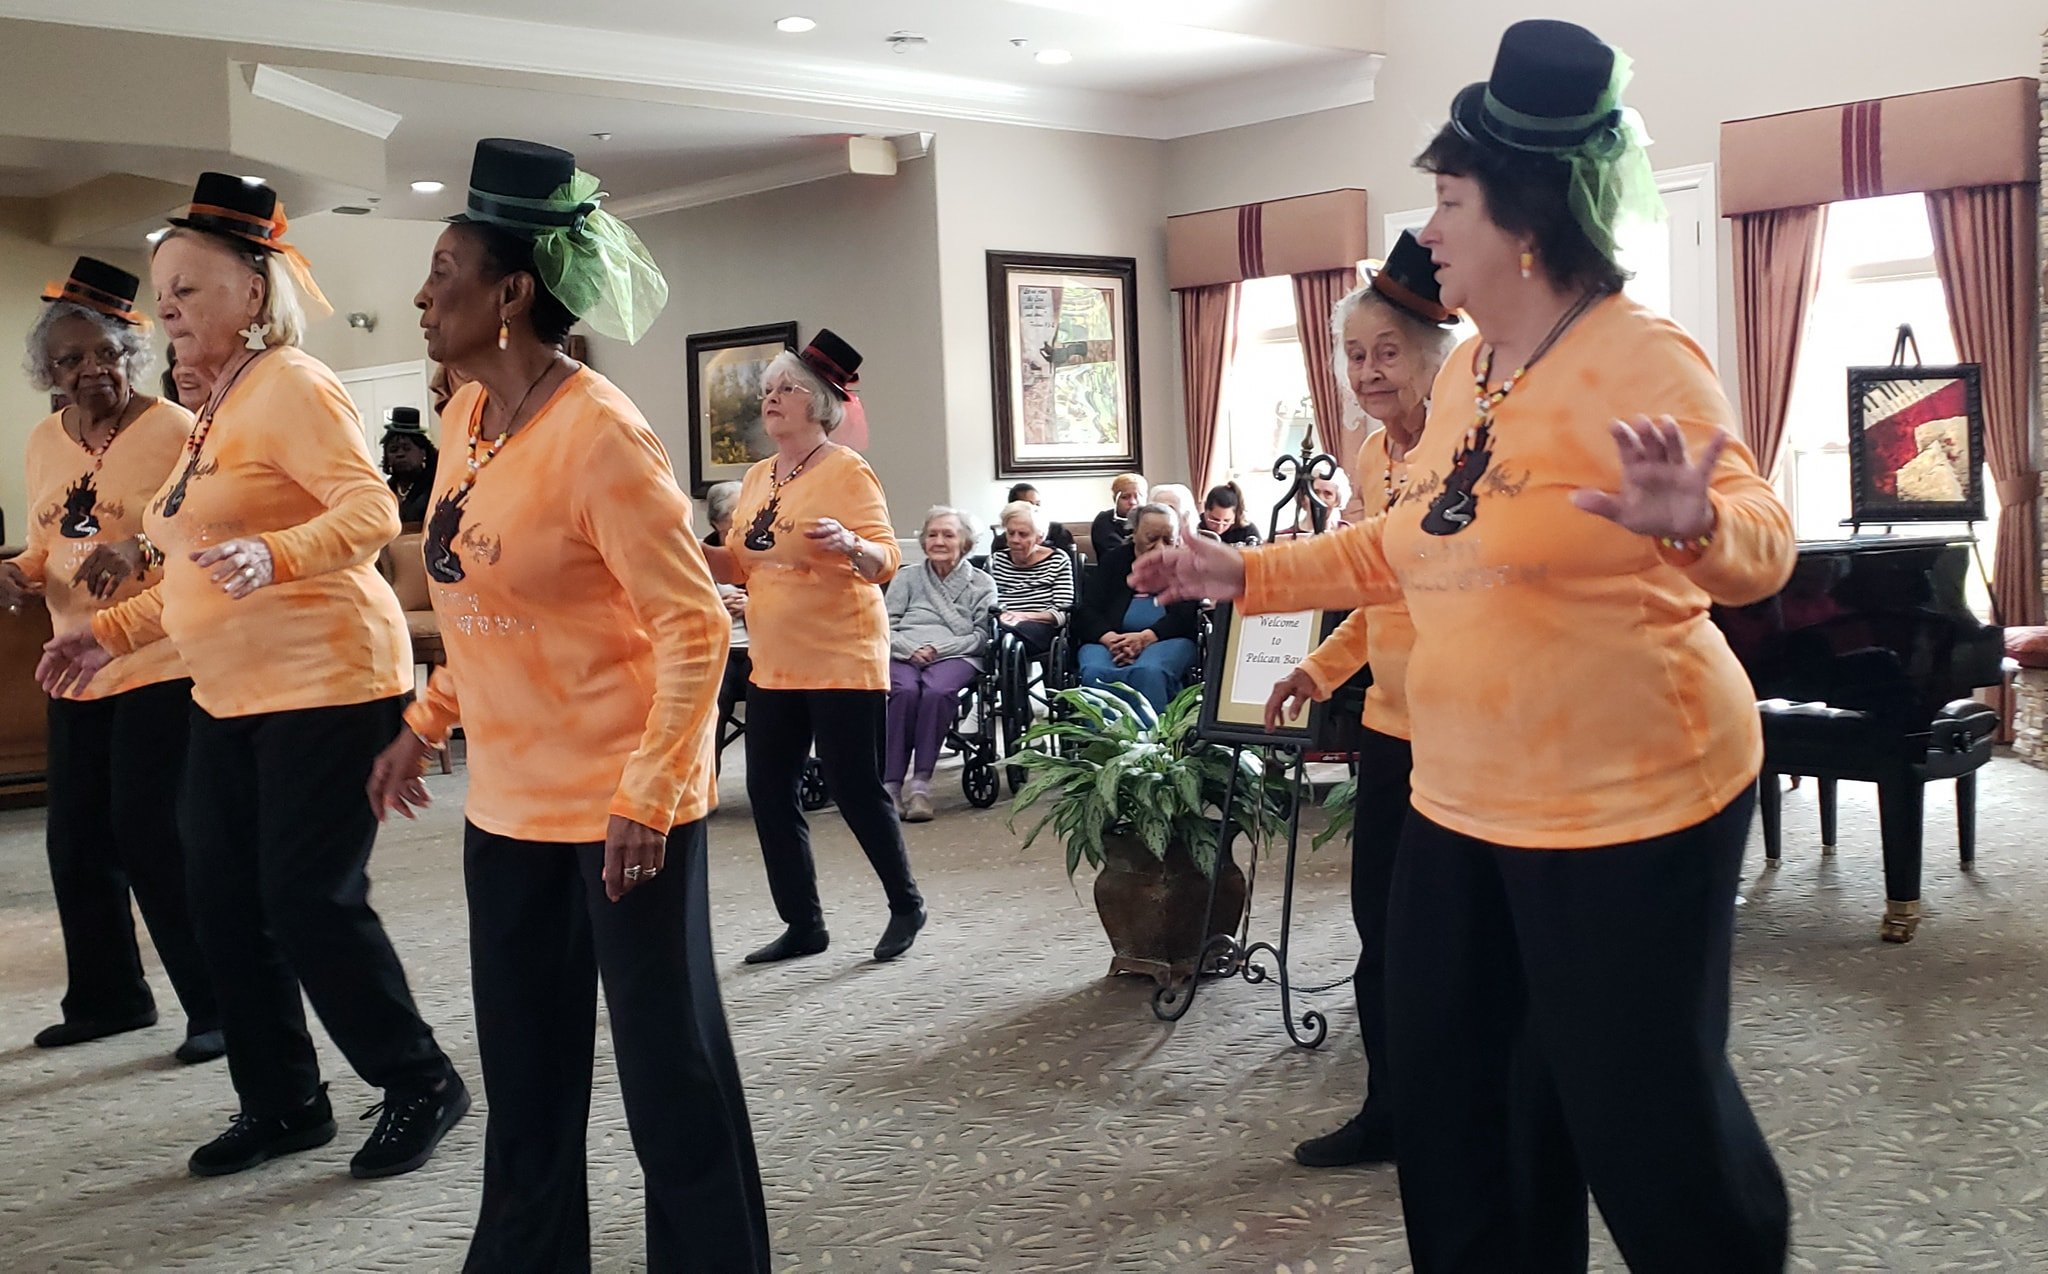 senior entertainment Beaumont, senior housing Golden Triangle TX, senior living Lumberton TX,